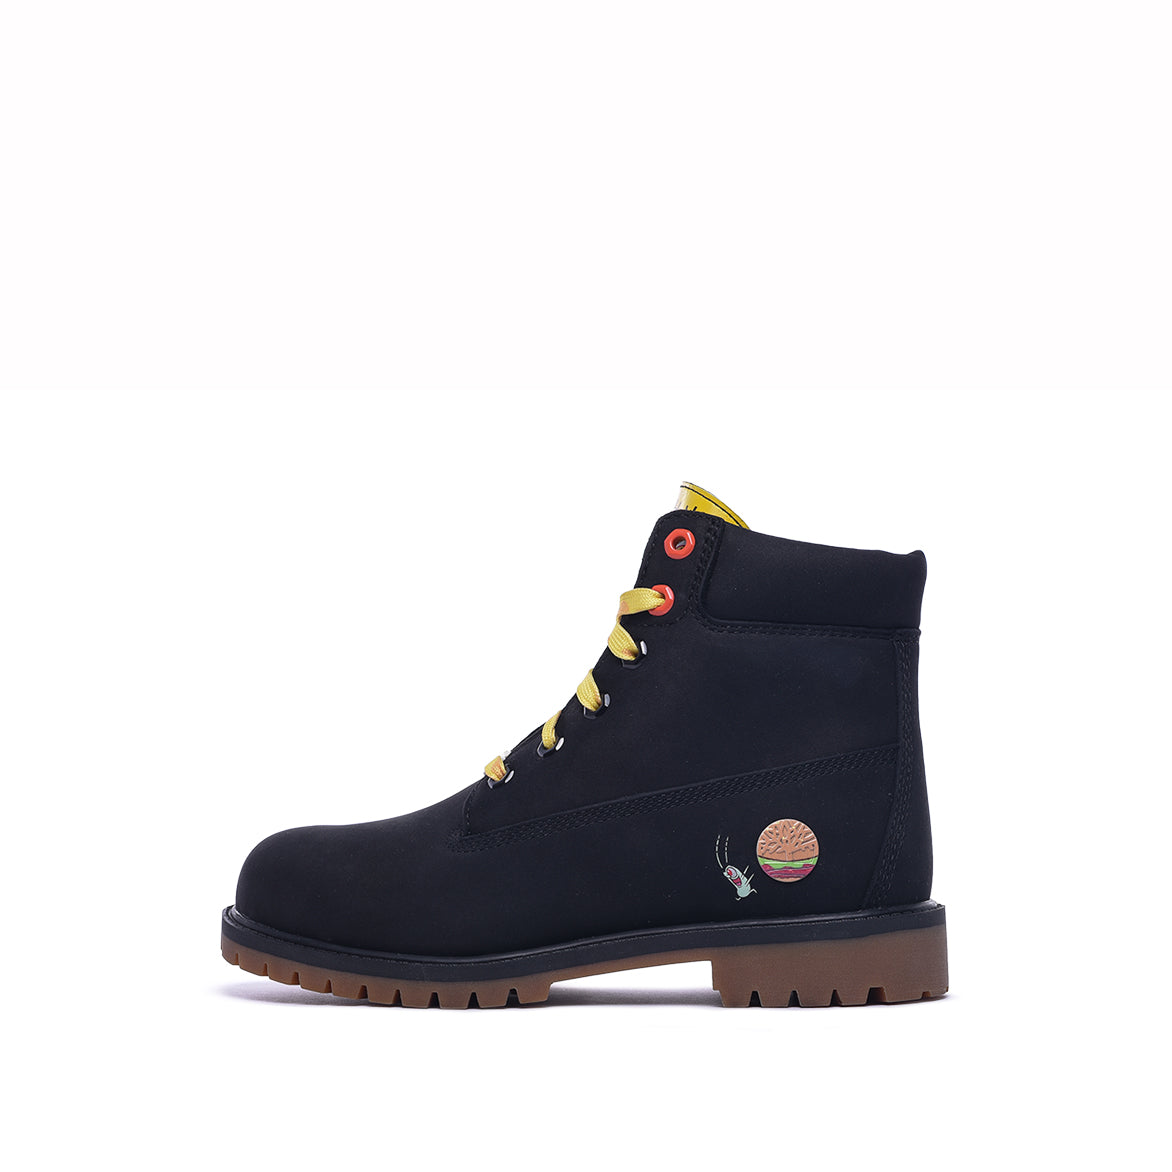 "SPONGEBOB X TIMBERLAND 6"" PRM BOOT (PS) - BLACK"